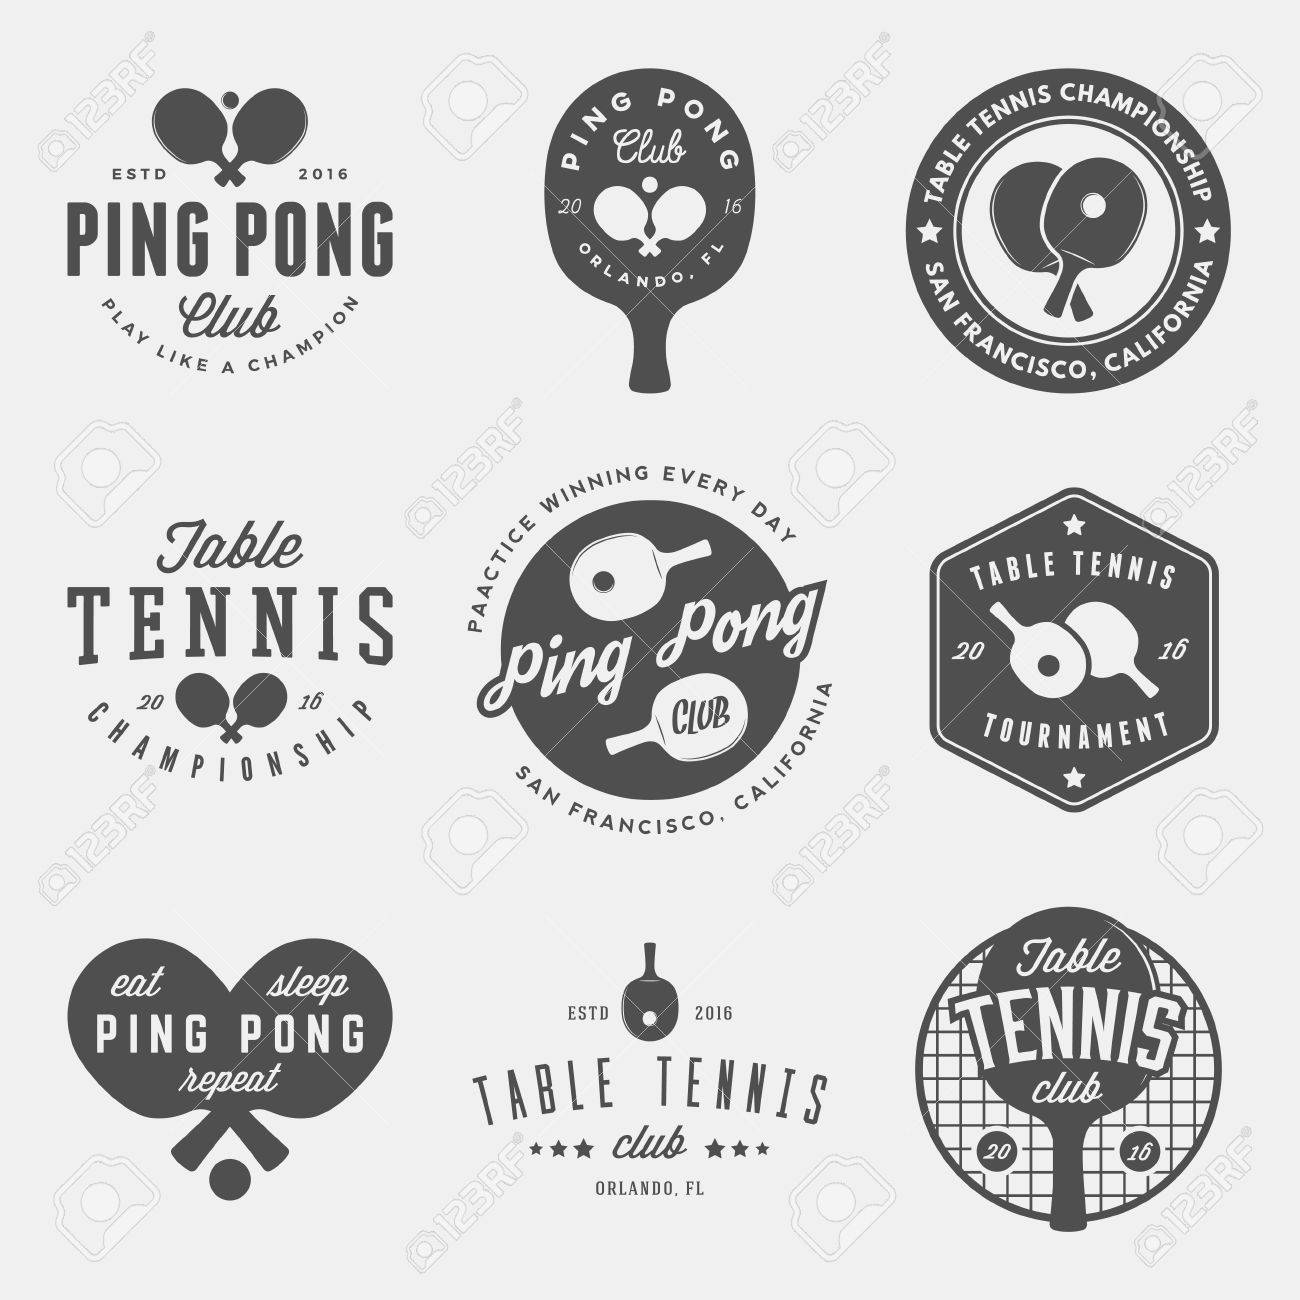 vector set of ping pong logos, emblems and design elements. table tennis logotype templates and badges - 71968522